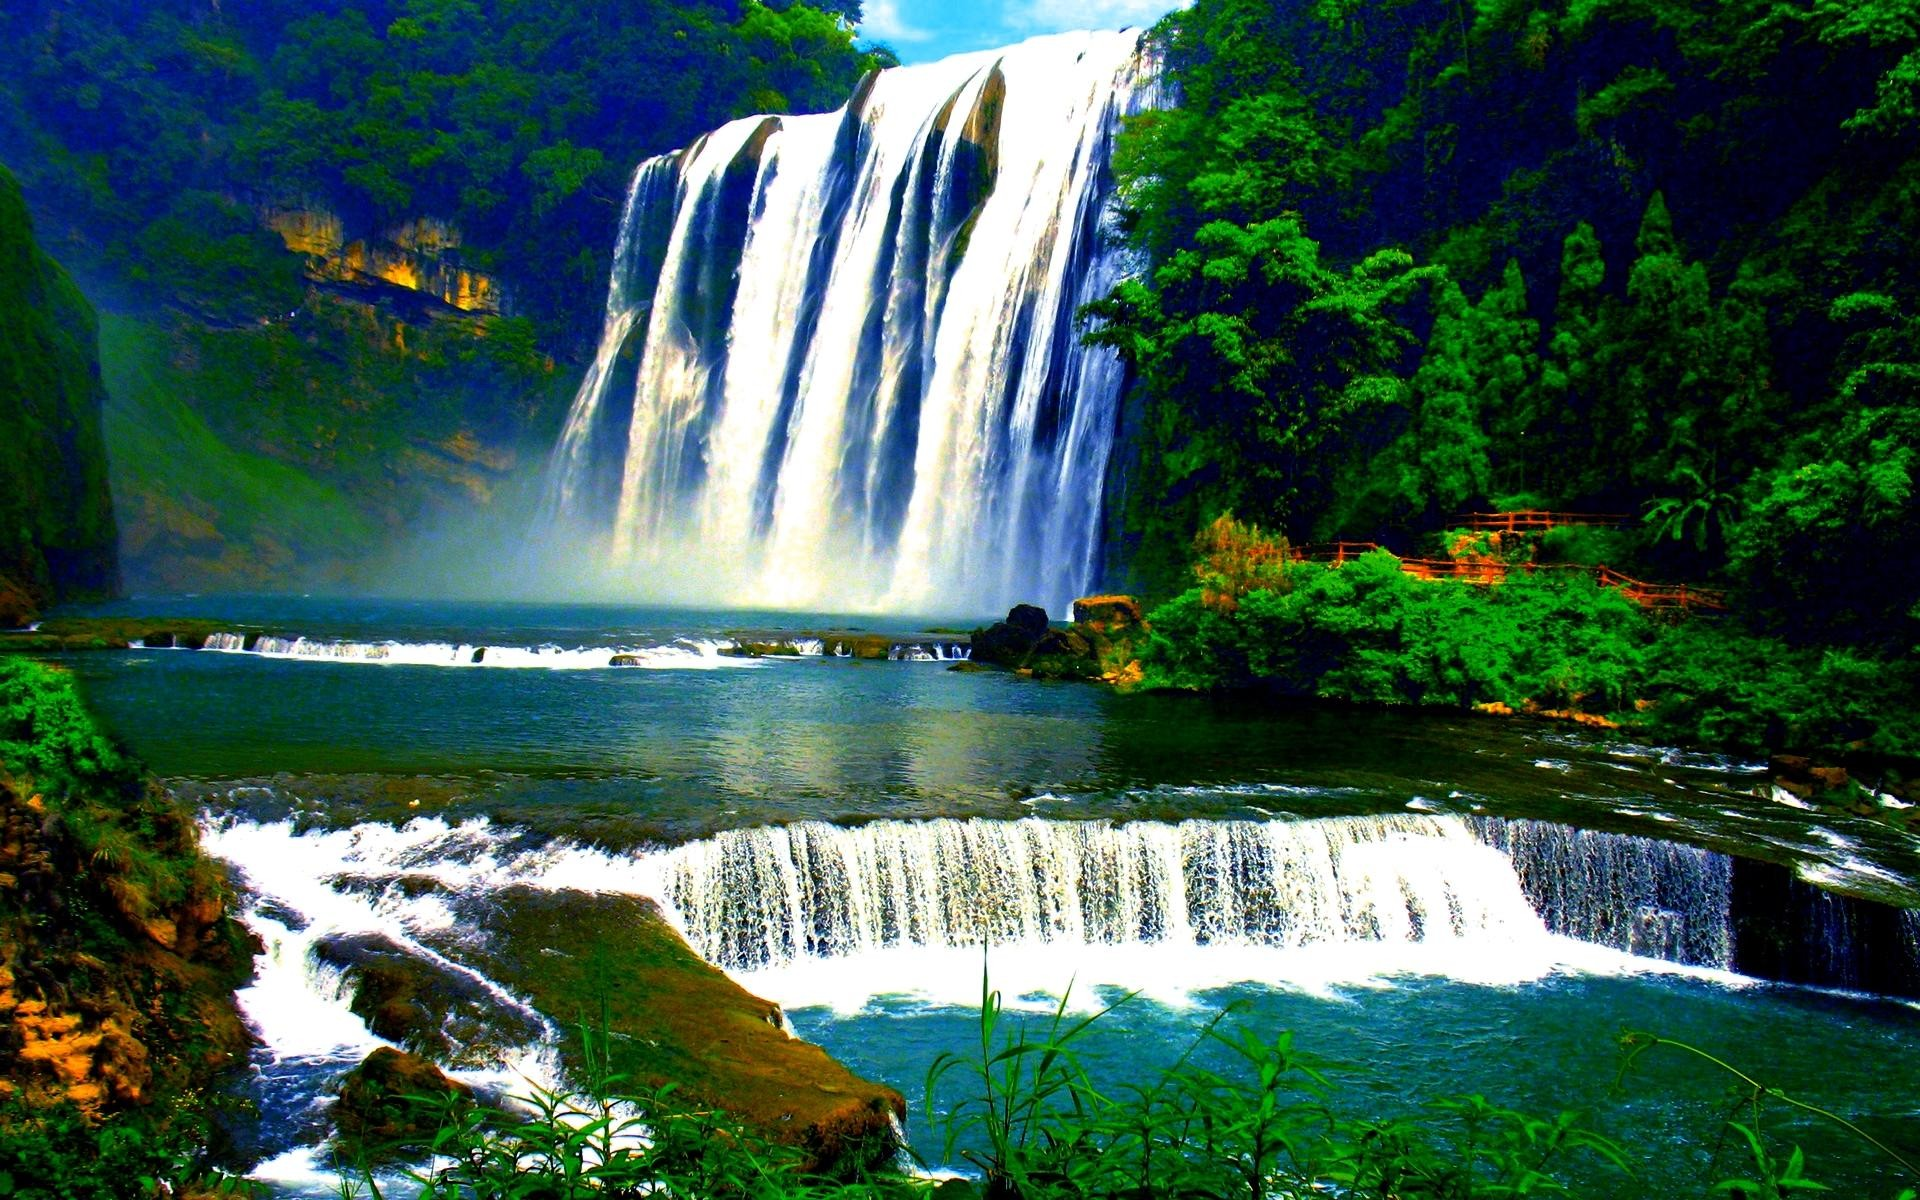 Live waterfalls wallpapers with sound 36 images - Waterfalls desktop wallpaper forest falls ...